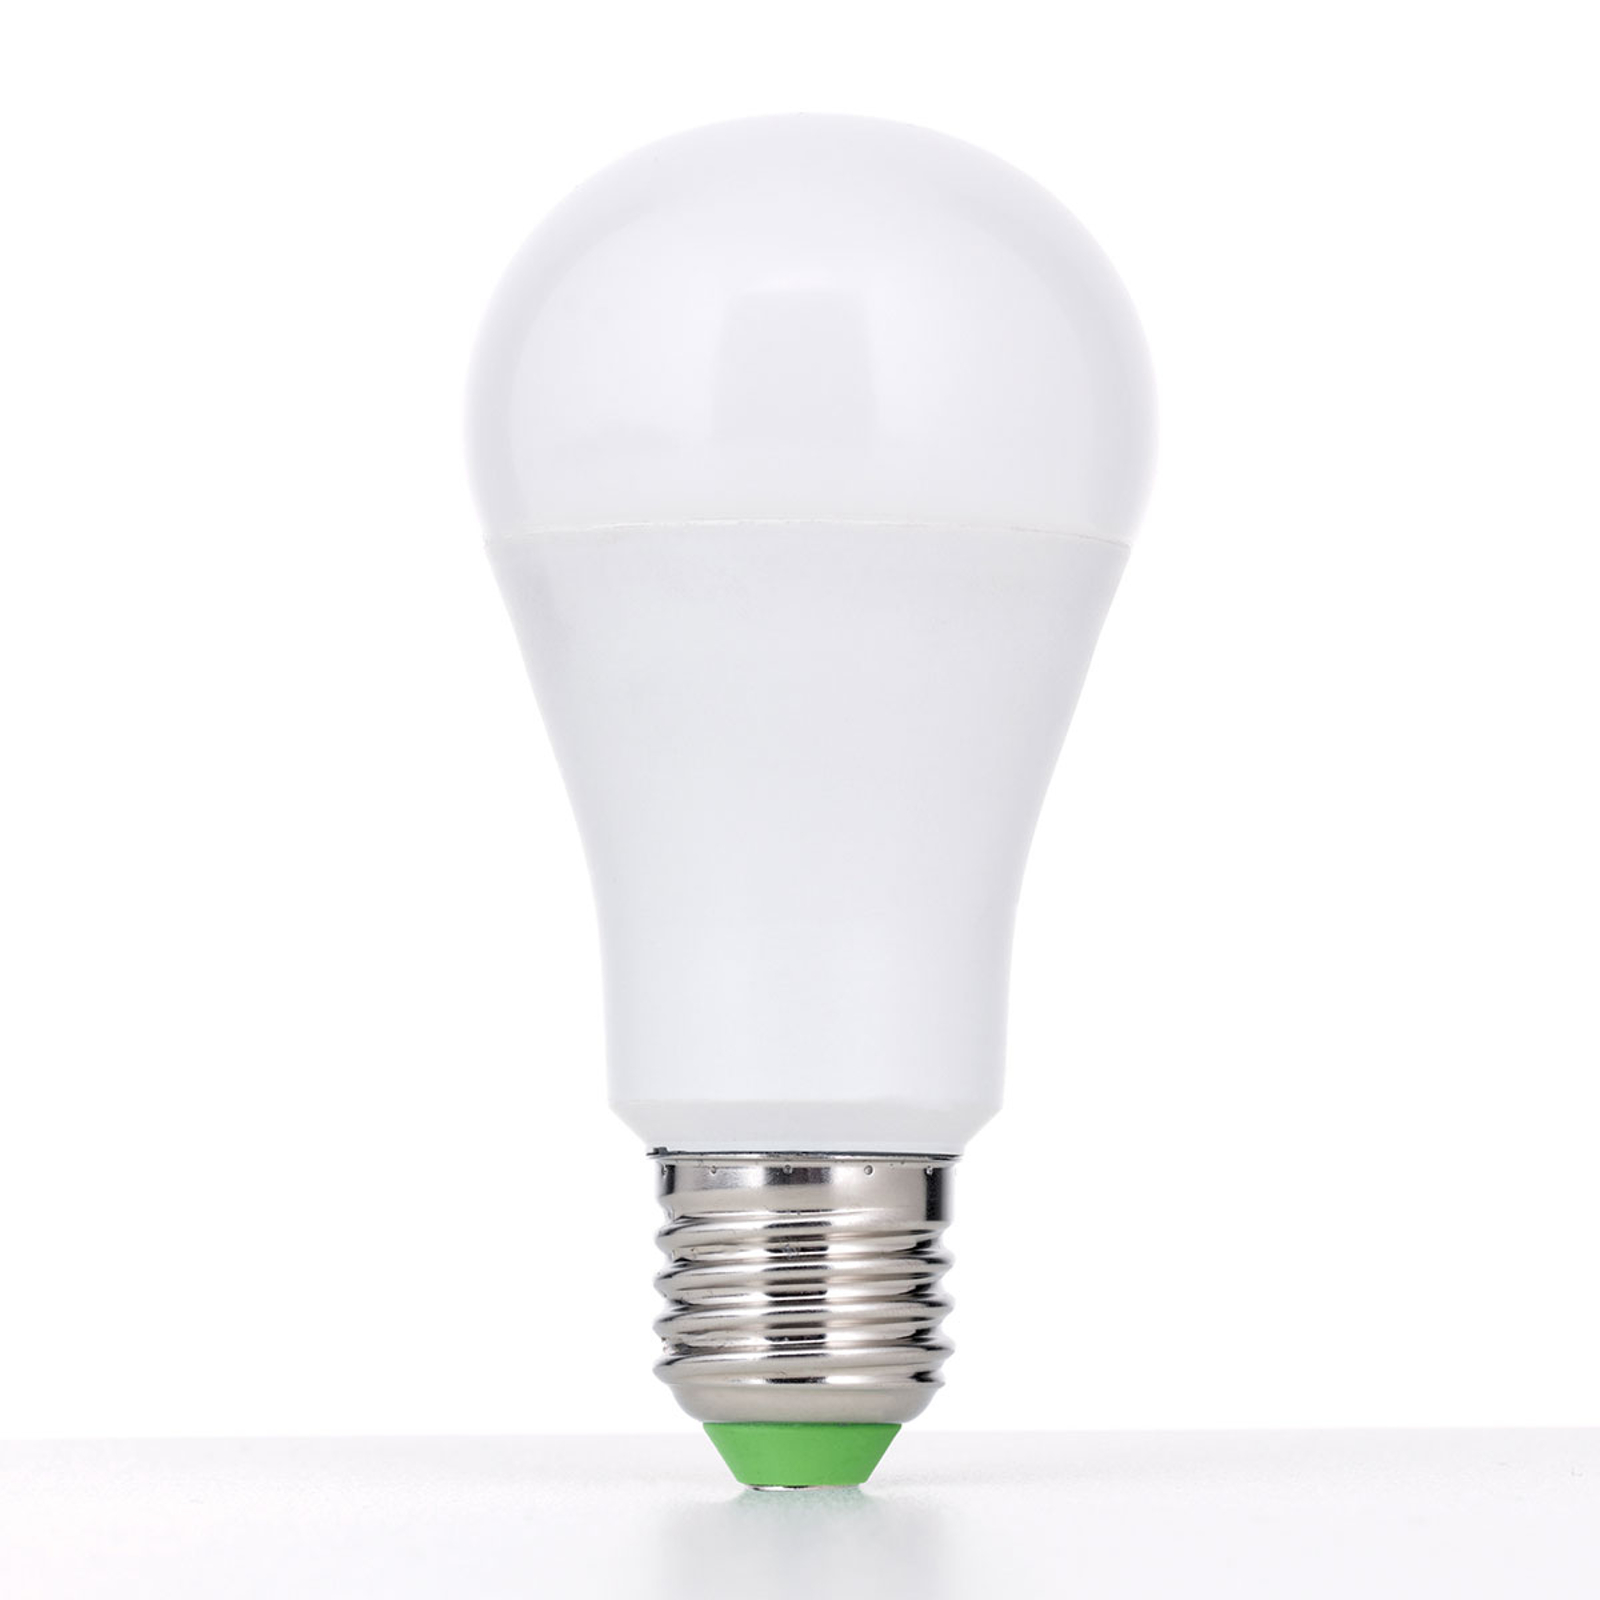 E27 LED-Lampe 18W opal, warmweiß, dimmbar